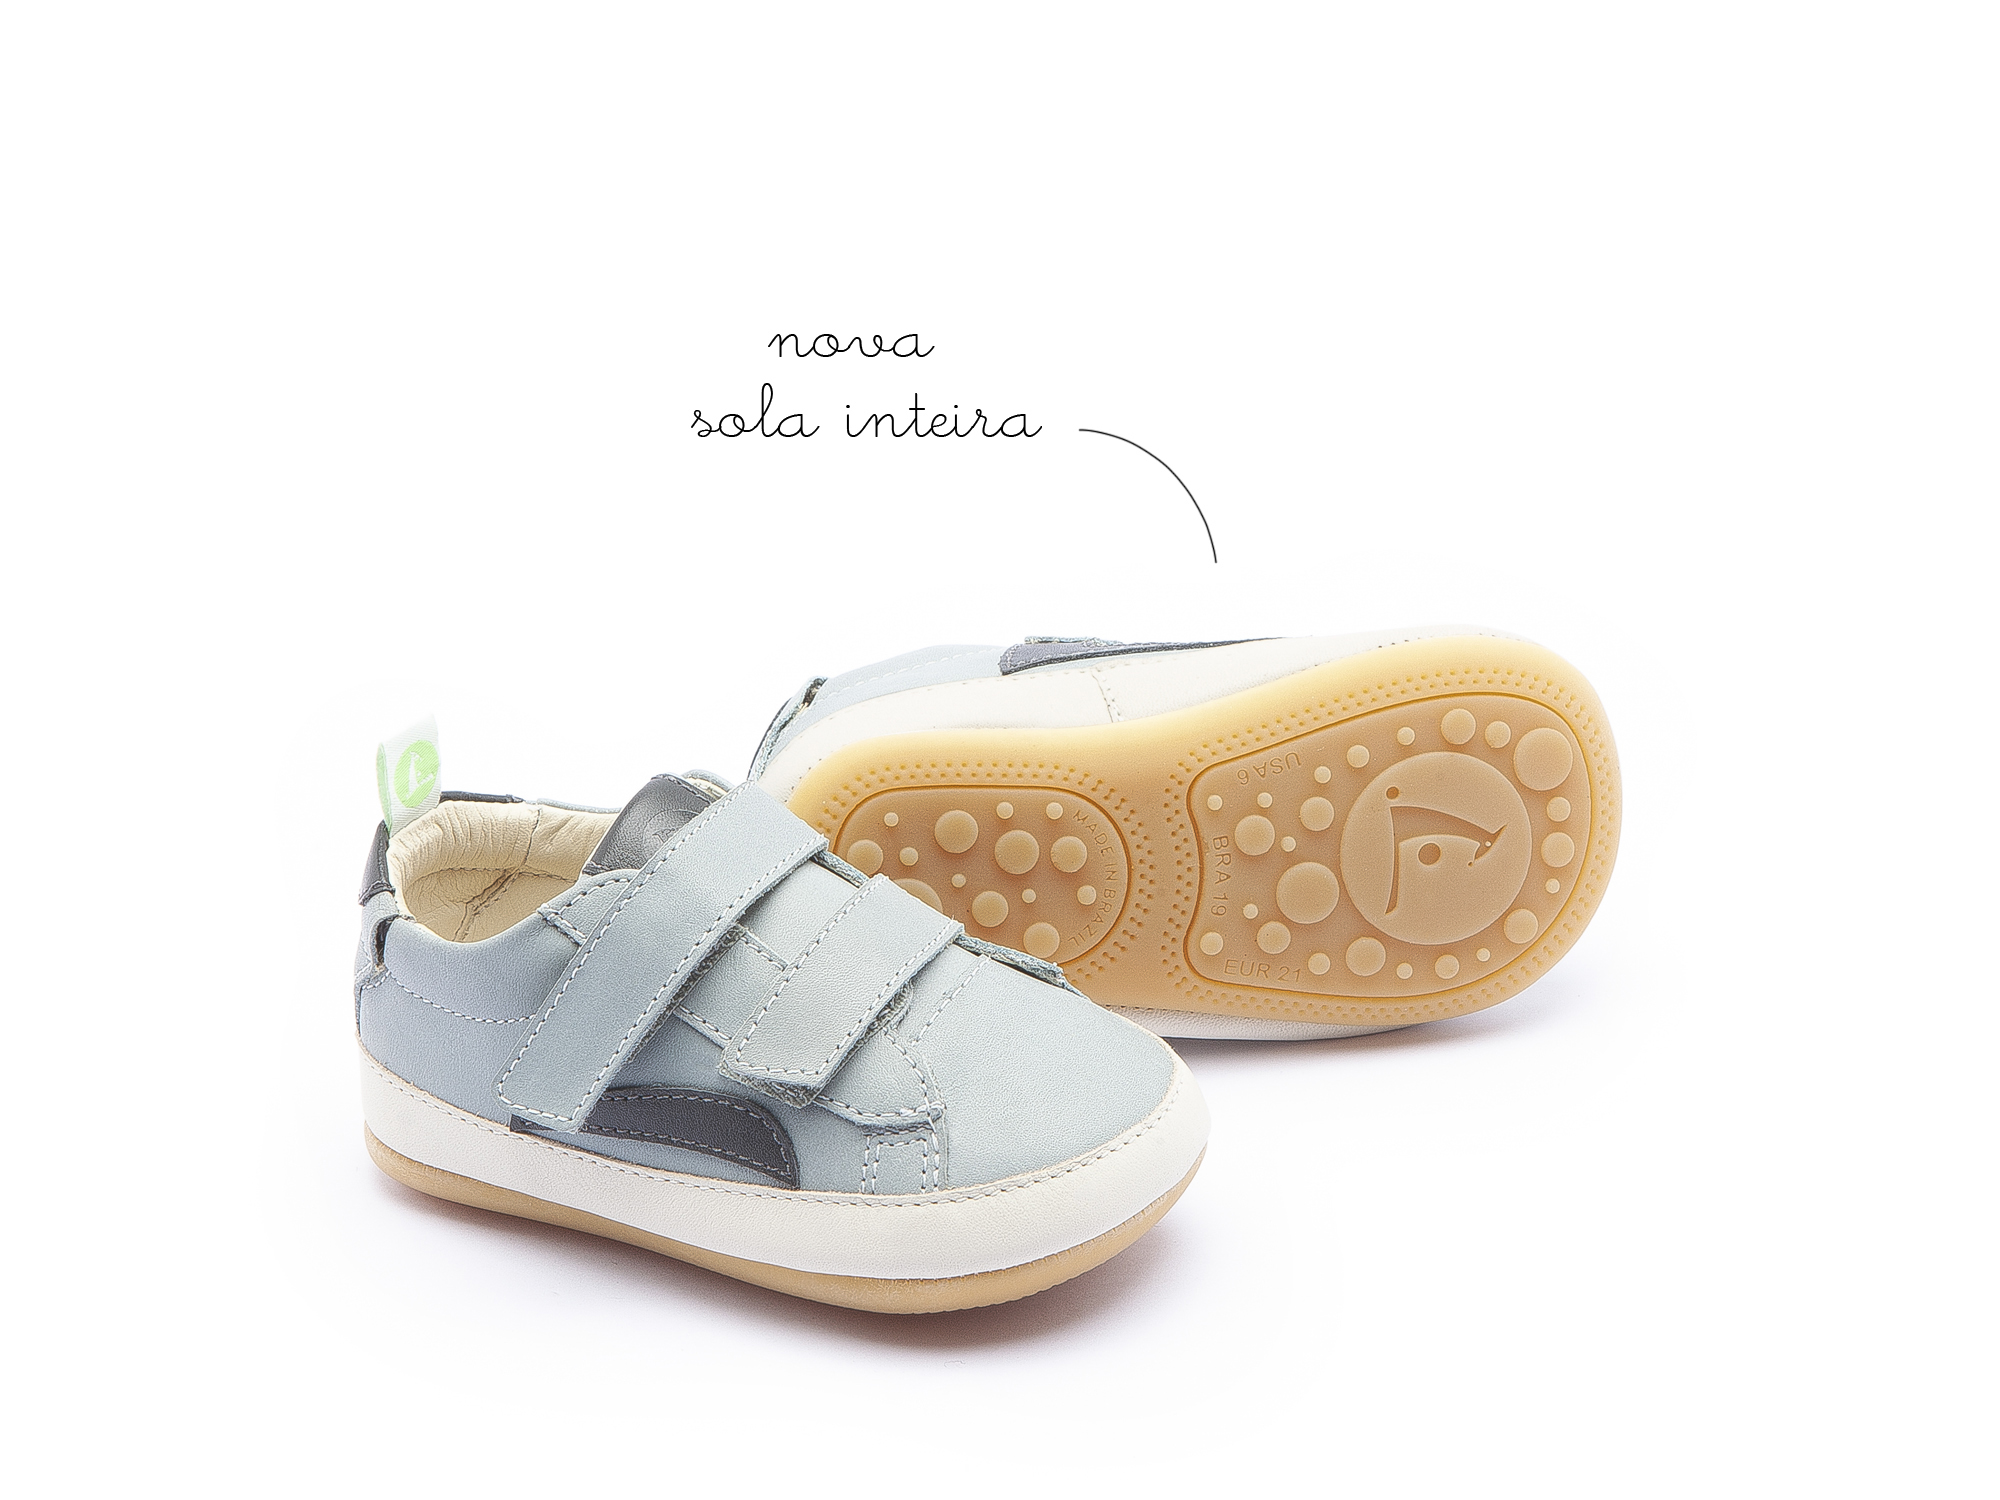 Sneaker Casual Darty Slate Blue/ Ash Baby 0 à 2 anos - 0